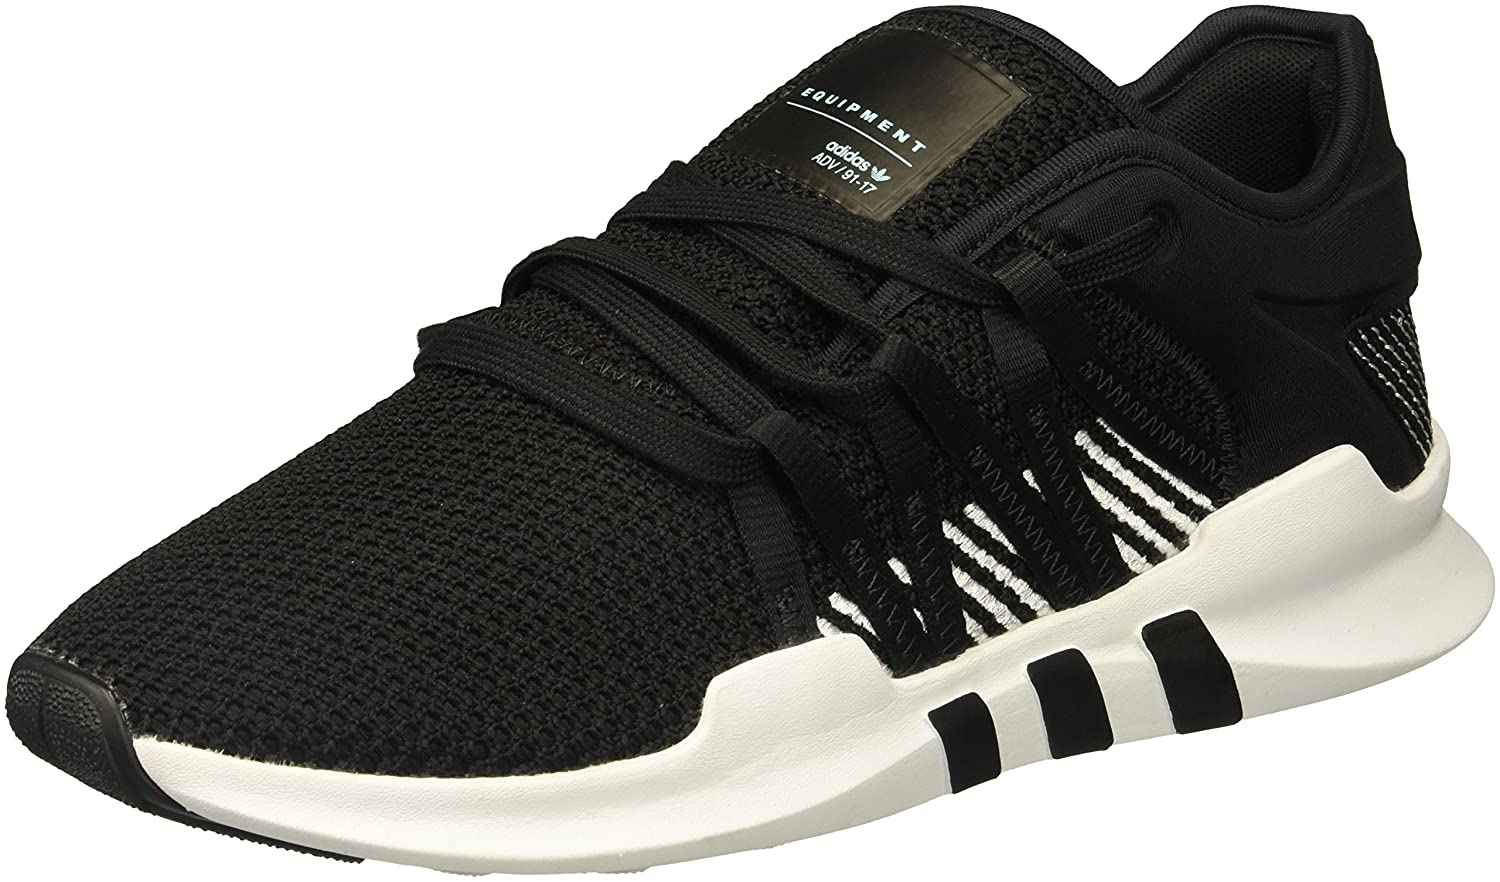 adidas Originals Women's EQT Racing Adv W Sneaker B01N7KGPA0 11 B(M) US|Black/Black/White